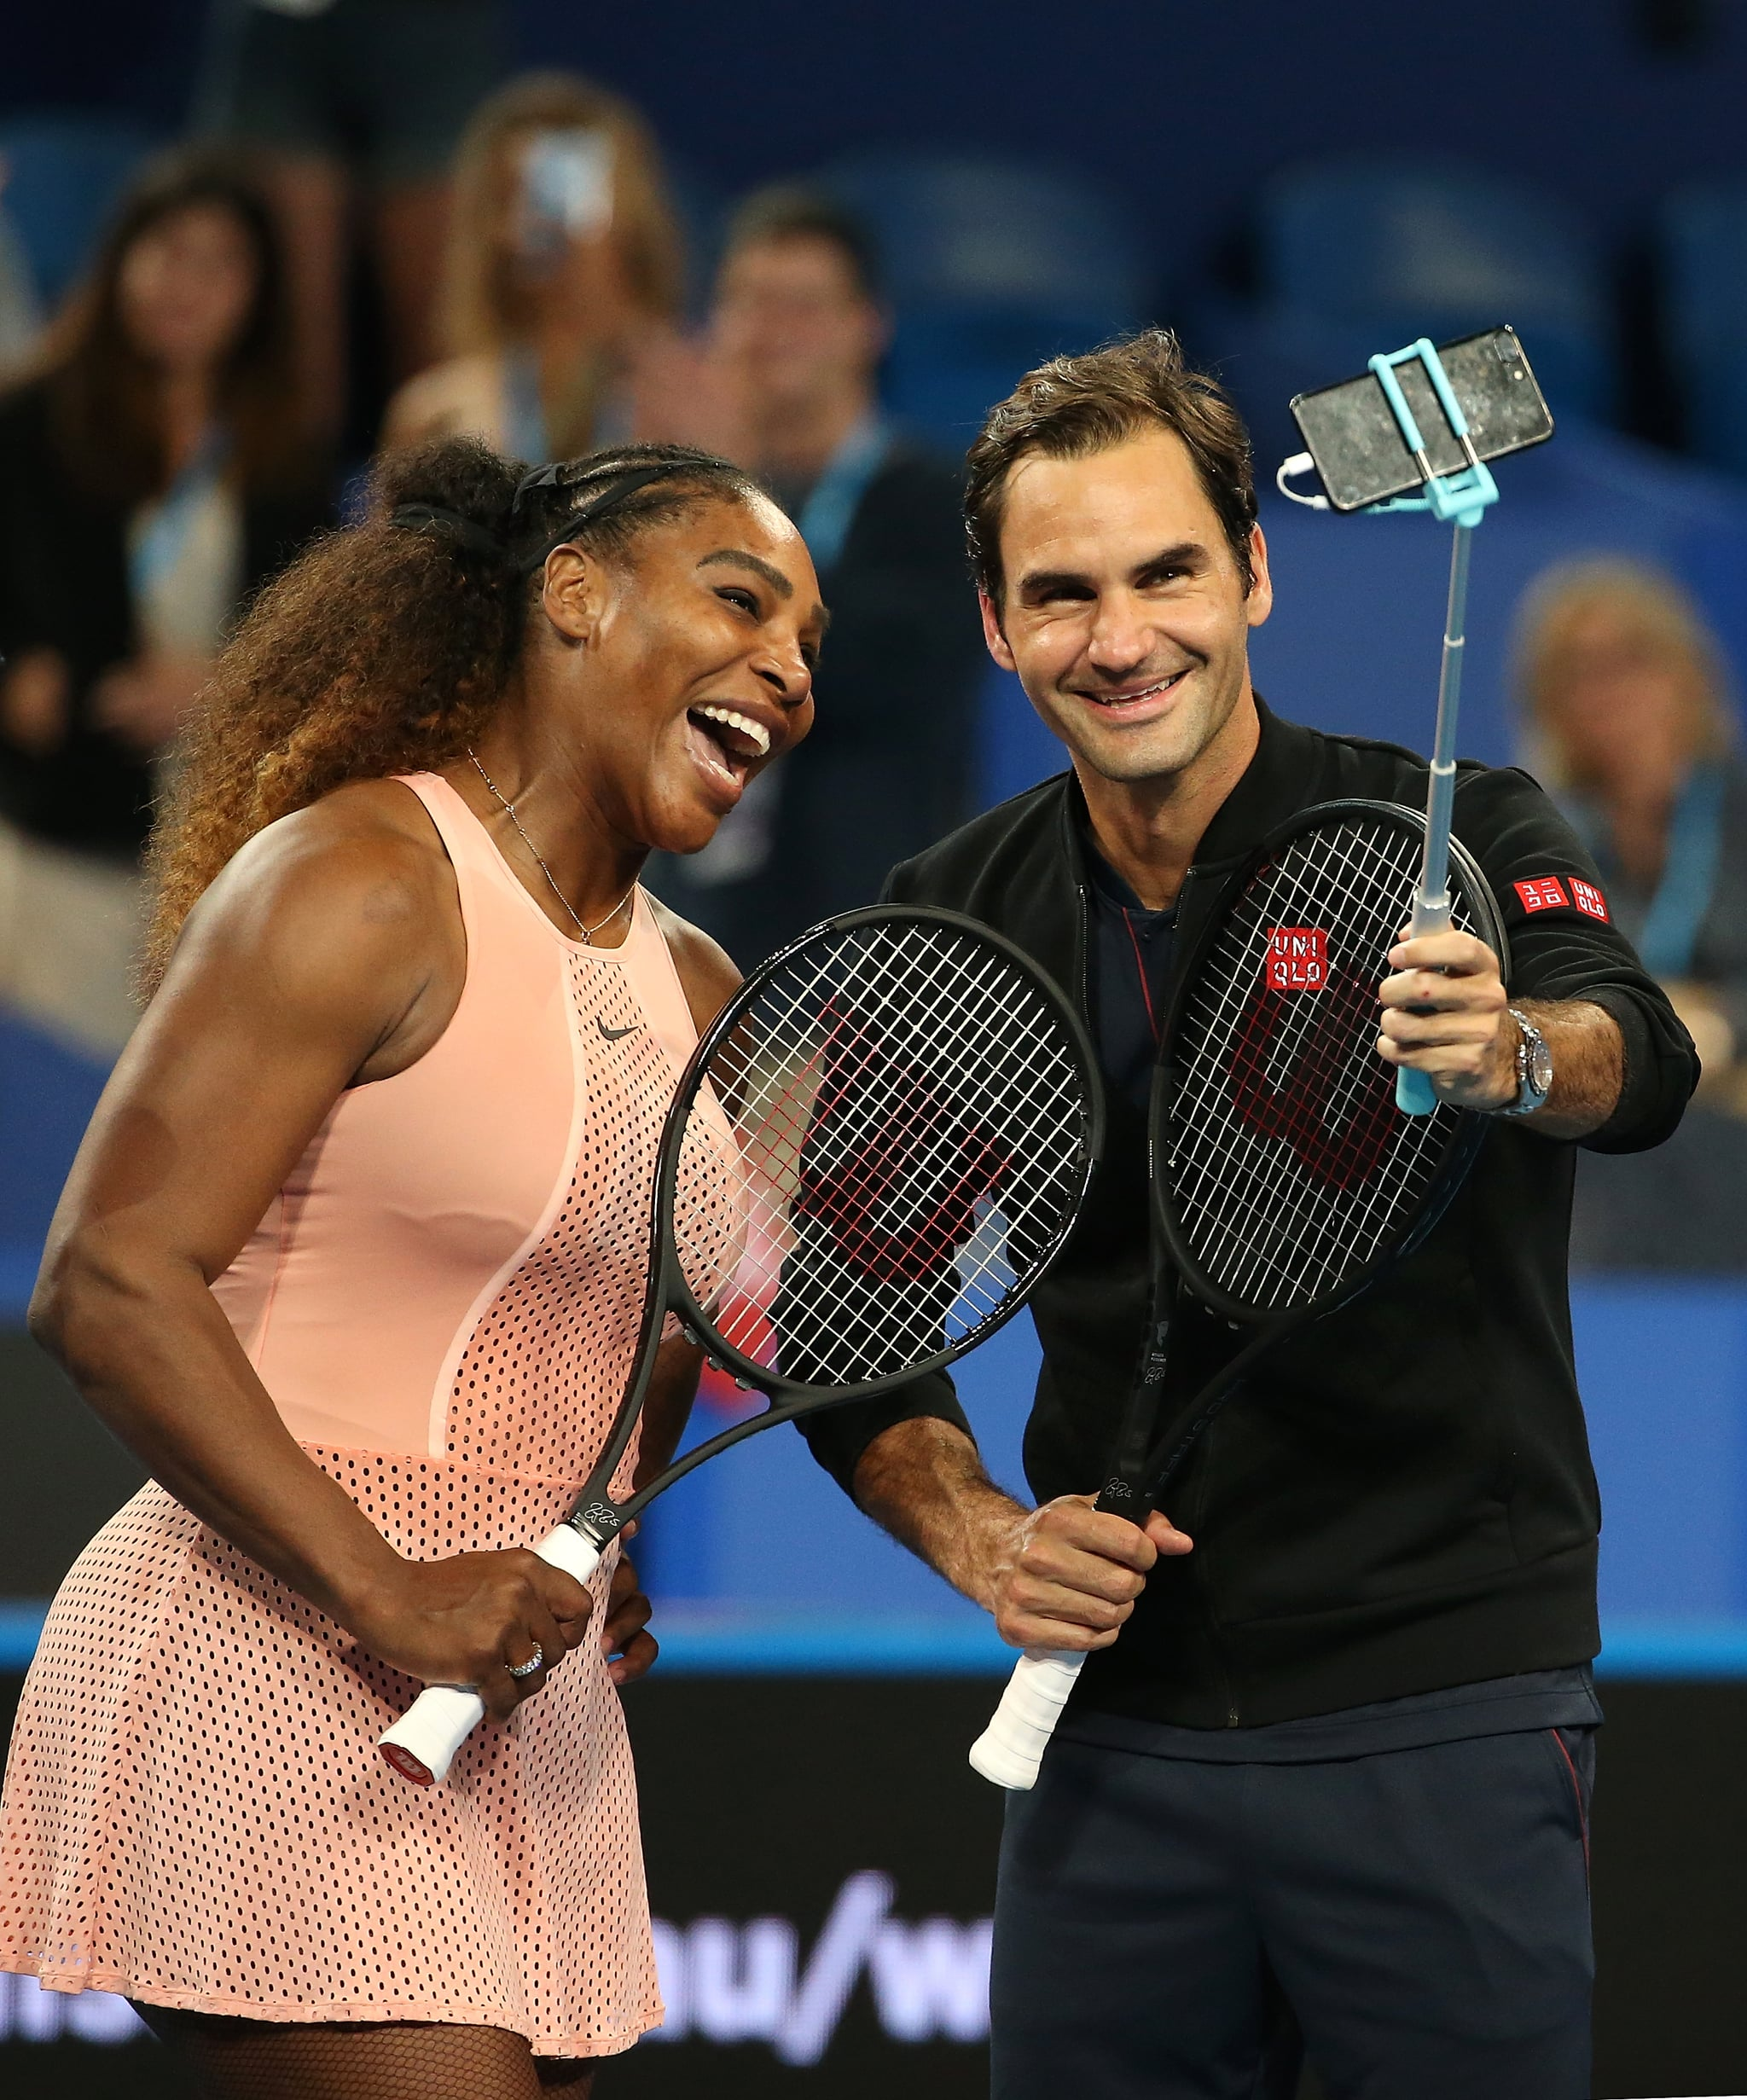 PERTH, AUSTRALIA - JANUARY 01: Serena Williams of the United States and Roger Federer of Switzerland take a selfie on court following their mixed doubles match during day four of the 2019 Hopman Cup at RAC Arena on January 01, 2019 in Perth, Australia. (Photo by Paul Kane/Getty Images)